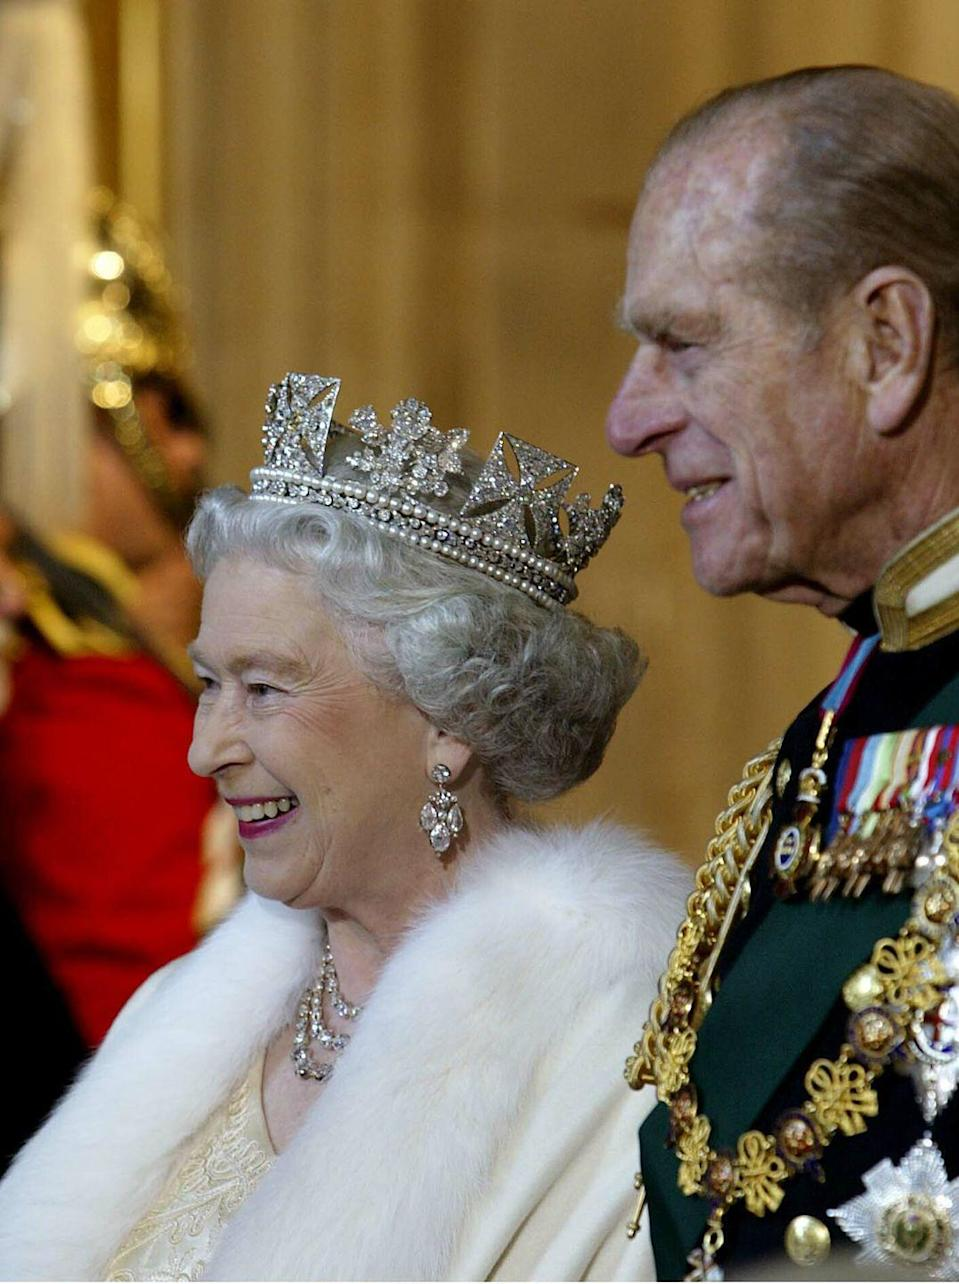 """<p>In February, England celebrated the queen's Golden Jubilee — <a href=""""https://www.goodhousekeeping.com/life/entertainment/g2730/queen-elizabeth-ii-young-rare-photos/"""" rel=""""nofollow noopener"""" target=""""_blank"""" data-ylk=""""slk:50 years on the throne"""" class=""""link rapid-noclick-resp"""">50 years on the throne</a>. In her jubilee speech, she publicly credited her husband: """"I take this opportunity to mention the strength I draw from my own family. The Duke of Edinburgh has made an invaluable contribution to my life over these past 50 years."""" </p>"""